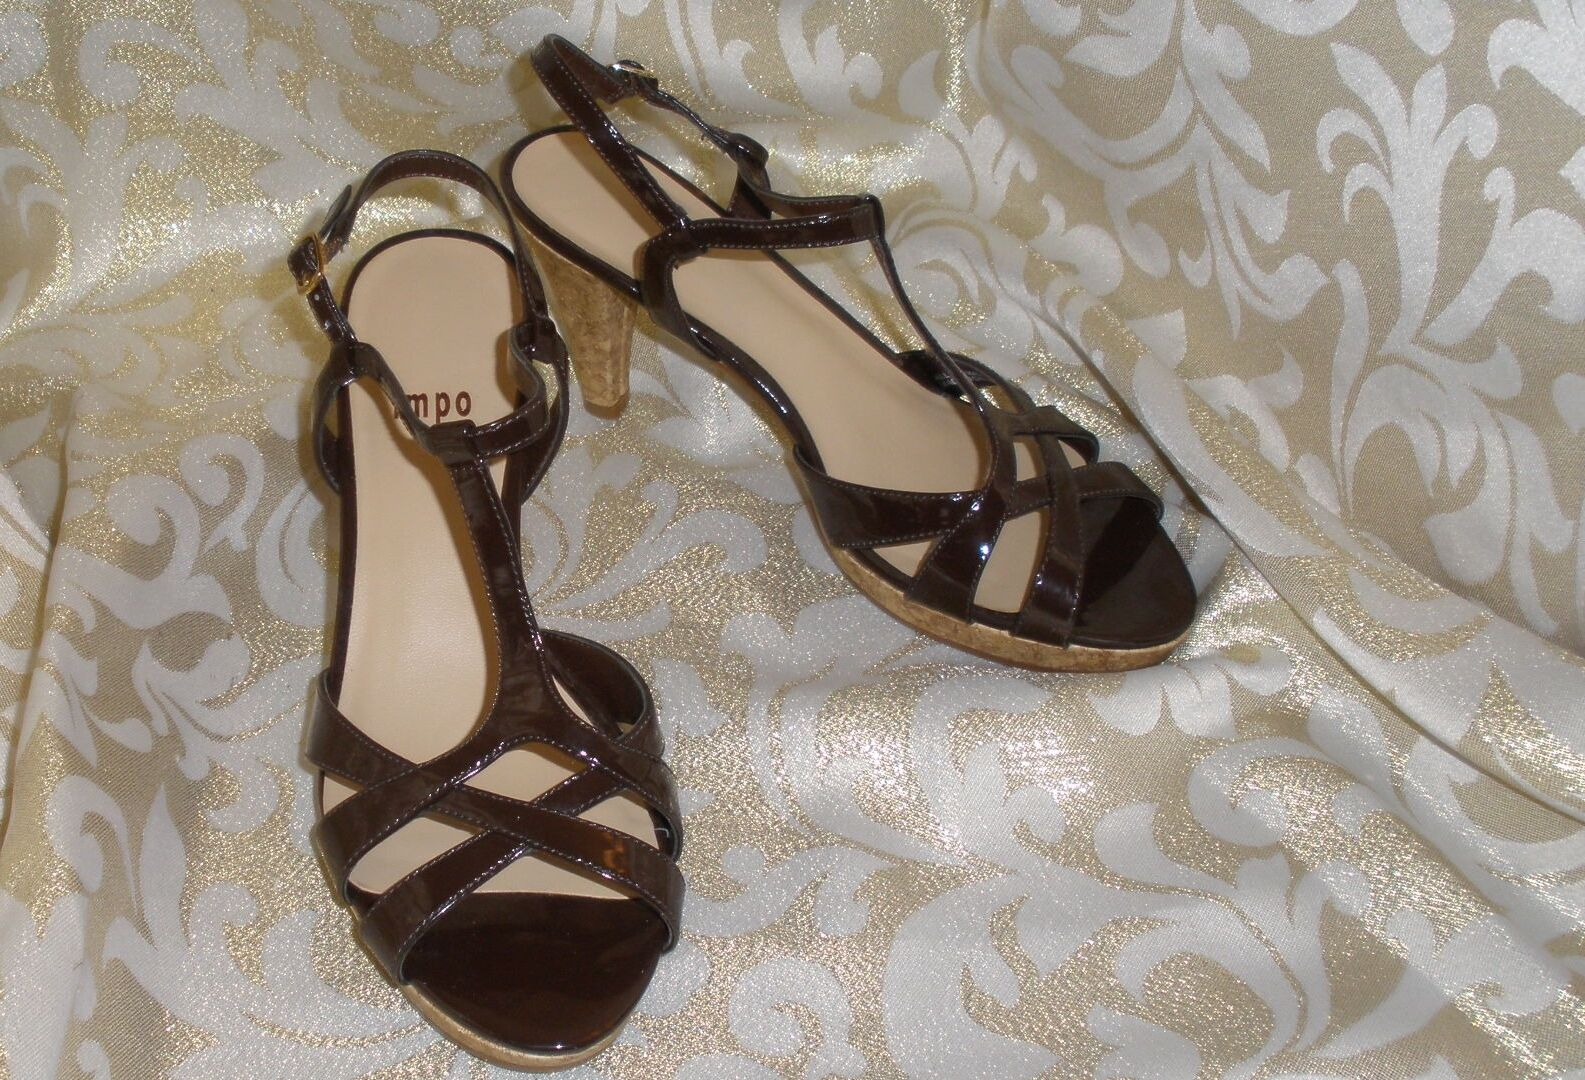 IMPO BROWN PATENT STRAPPY MULES PUMPS SLINGBACK T-STRAP PLATFORM MULES STRAPPY 3